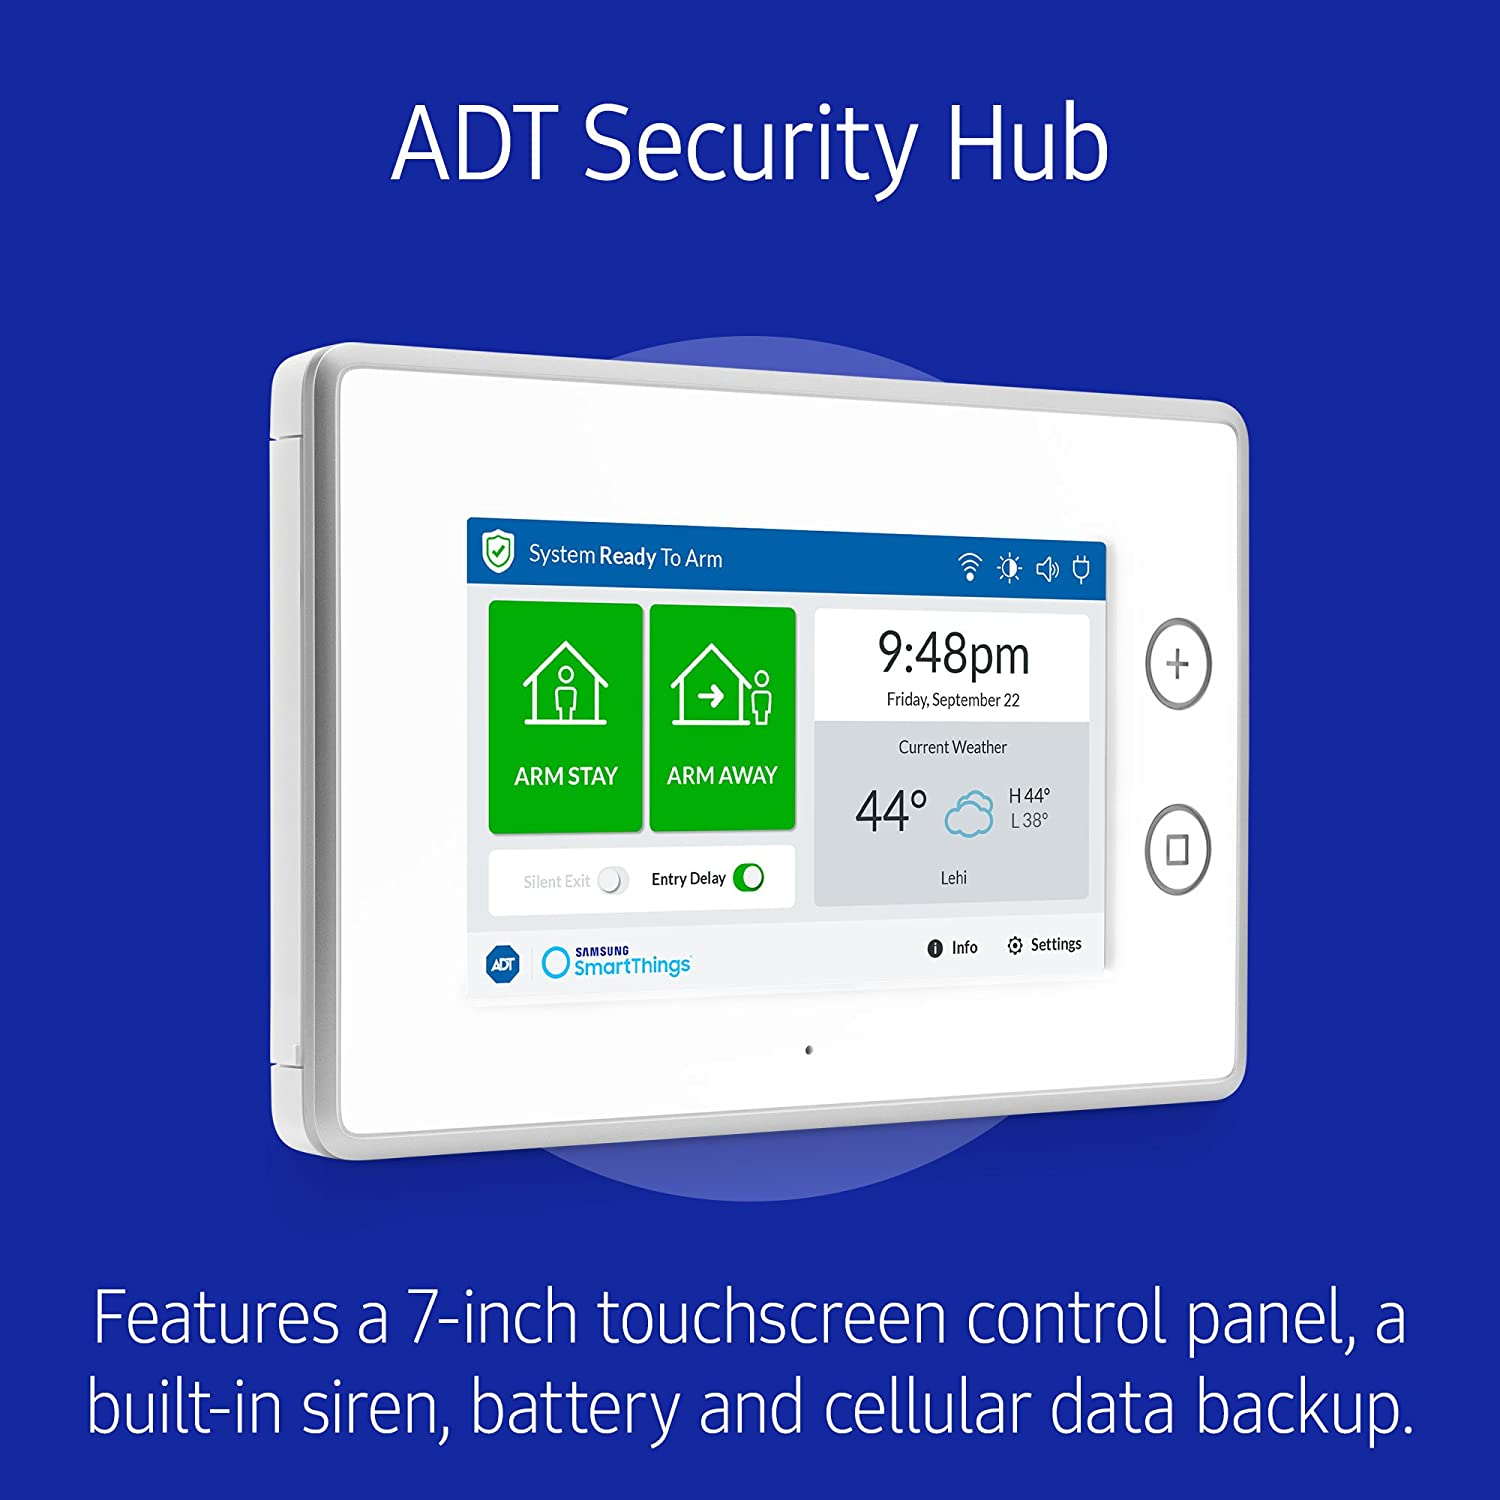 Samsung Smartthings Adt Wireless Home Security Starter Cameras Wiring Diagram Kit With Diy Smart Alarm System Hub Door And Window Sensors Motion Detector Alexa